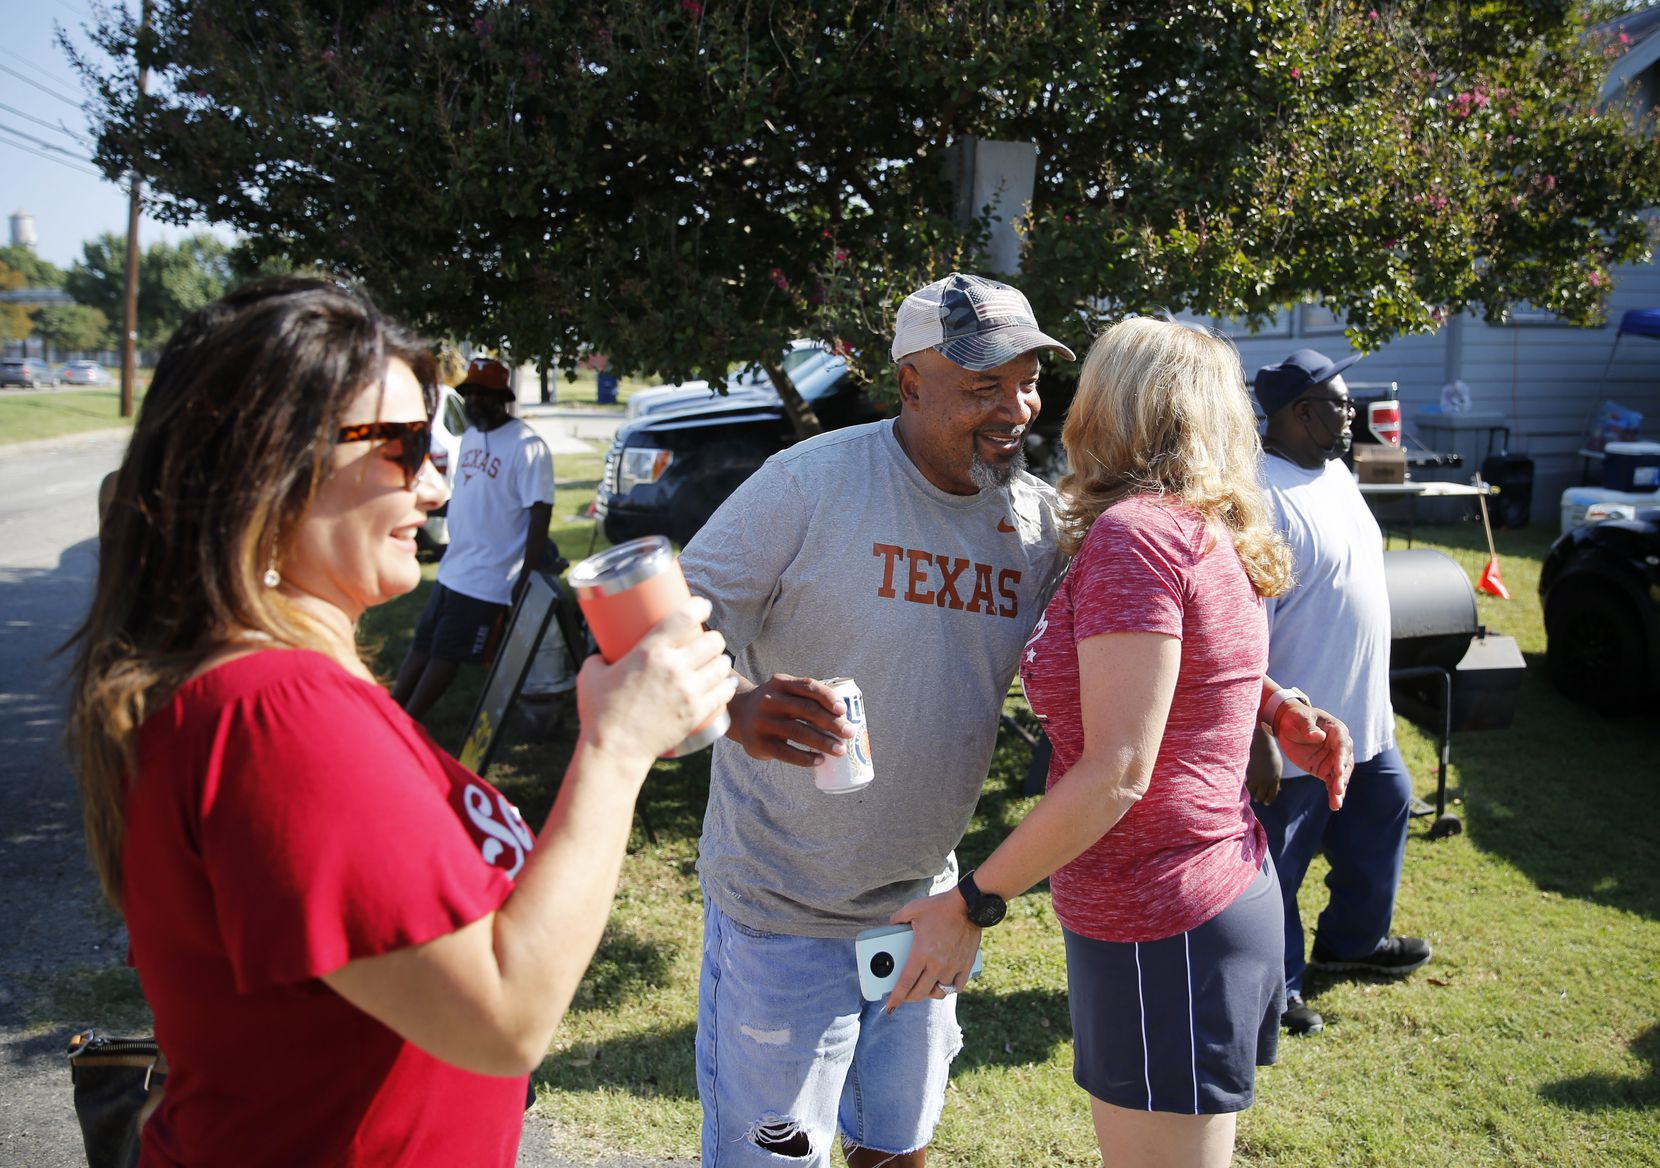 Stacey Walker of Dallas greets Barbara Brockhaus (right) of Oklahoma City and Bethany Neighbors (left) of Oklahoma City as they arrive in Dallas on Saturday, October 10, 2020. Walker, a UT fan, is cooking in preparation for Oklahoma fans he sees annually during the Texas Oklahoma game. They have met up for over a decade. Although the grill masters are diehard fans of their respective teams, the game has turned them into unlikely friends, and over the years, family. (Vernon Bryant/The Dallas Morning News)